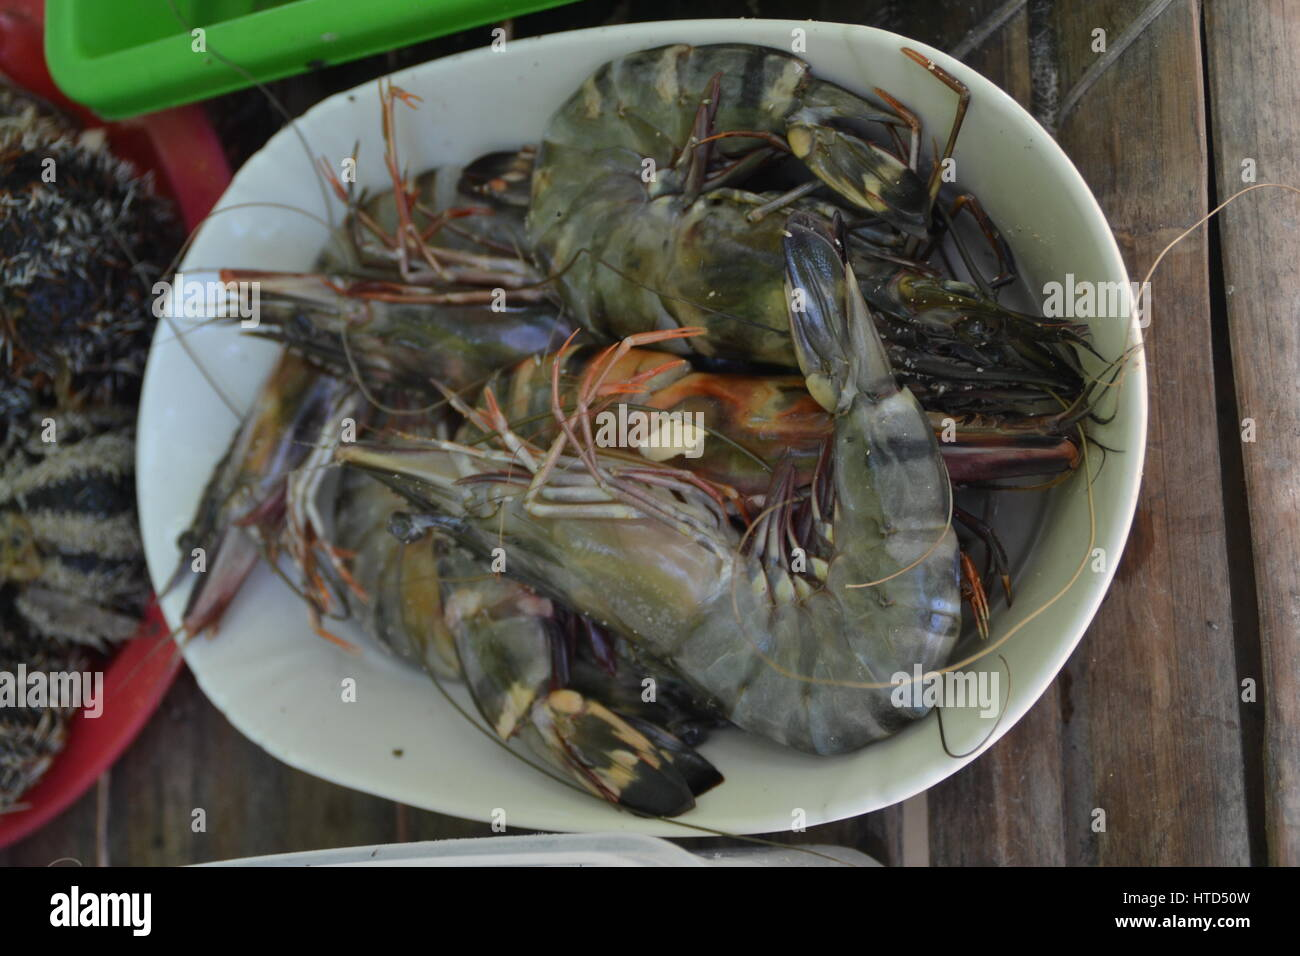 Crabs are prepared and eaten as dish in several different ways. Cooked or grilled. Very tasty, lots of them at square - Stock Image